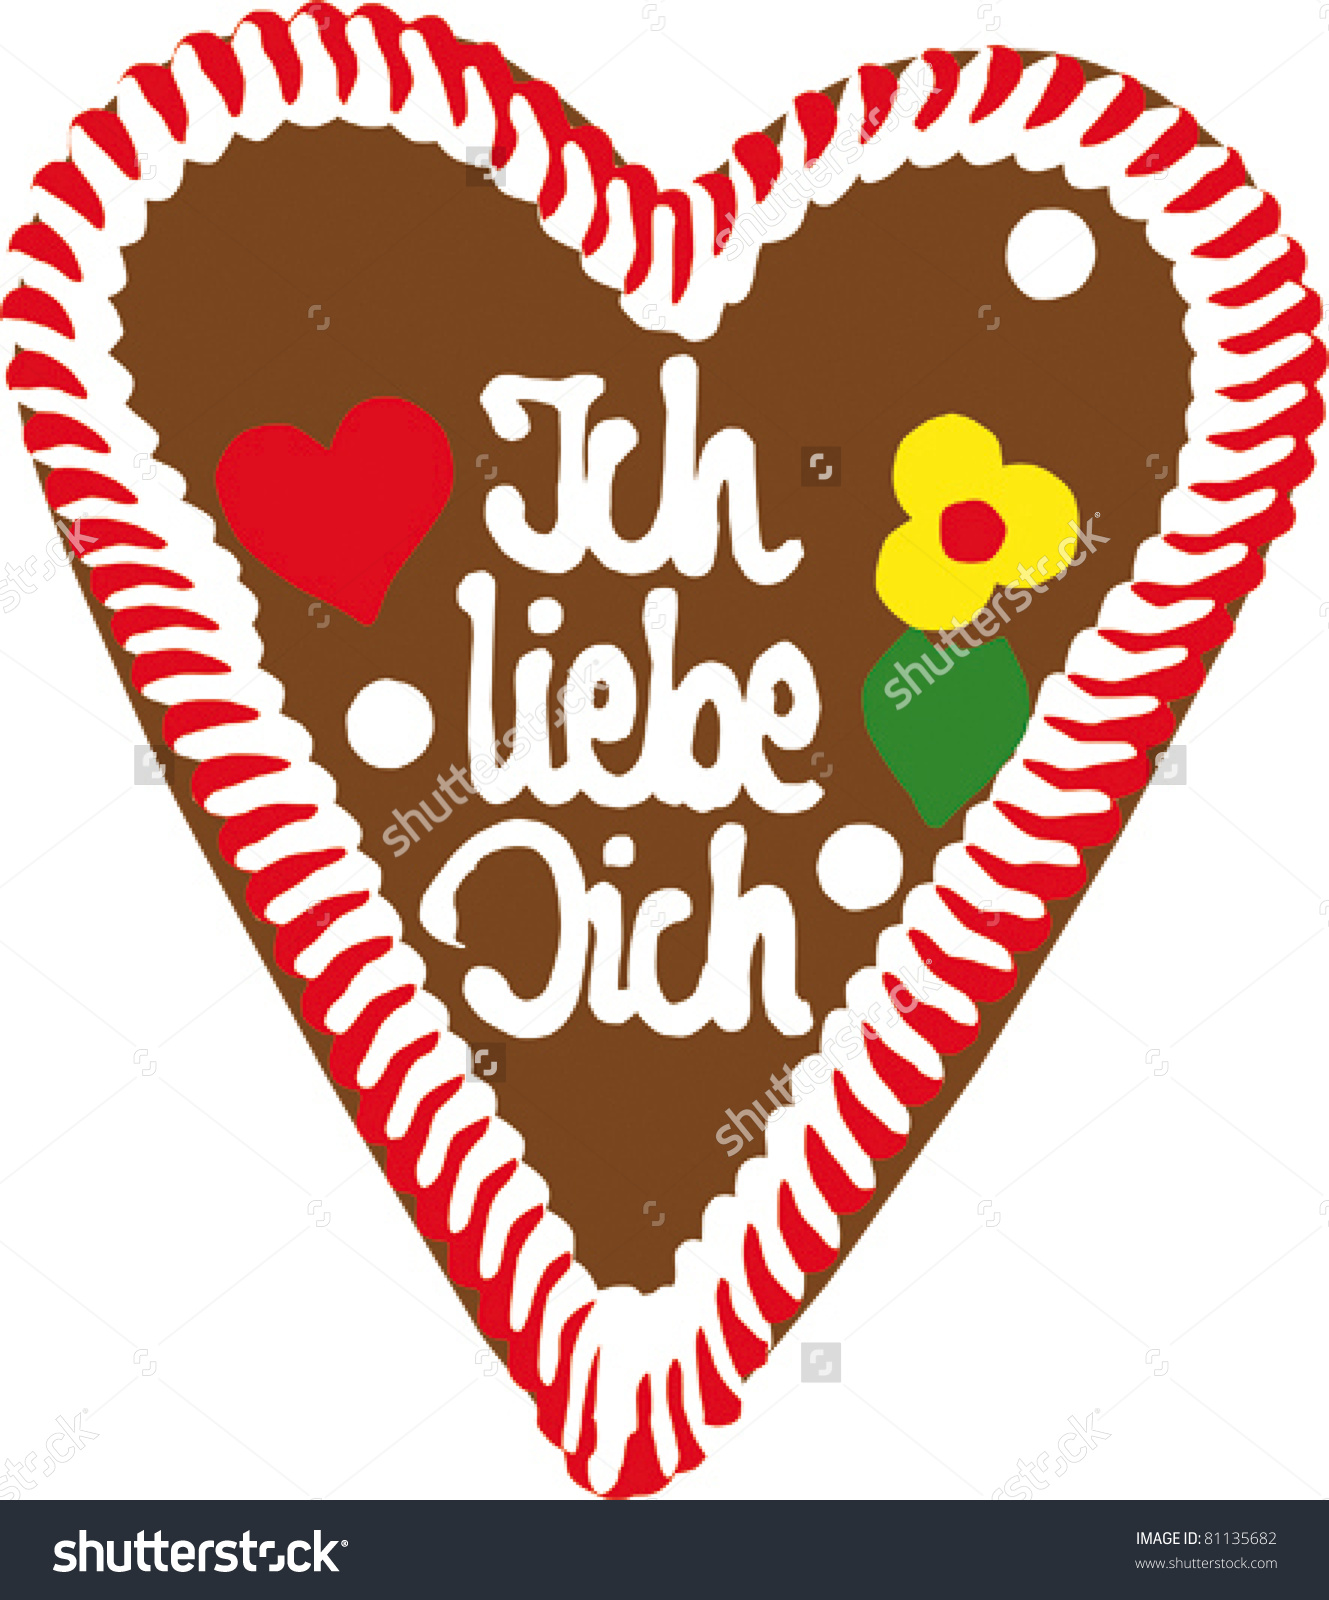 Clipart ich liebe dich picture library Gingerbread Oktoberfest Heart Saying Ich Liebe Stock Vector ... picture library